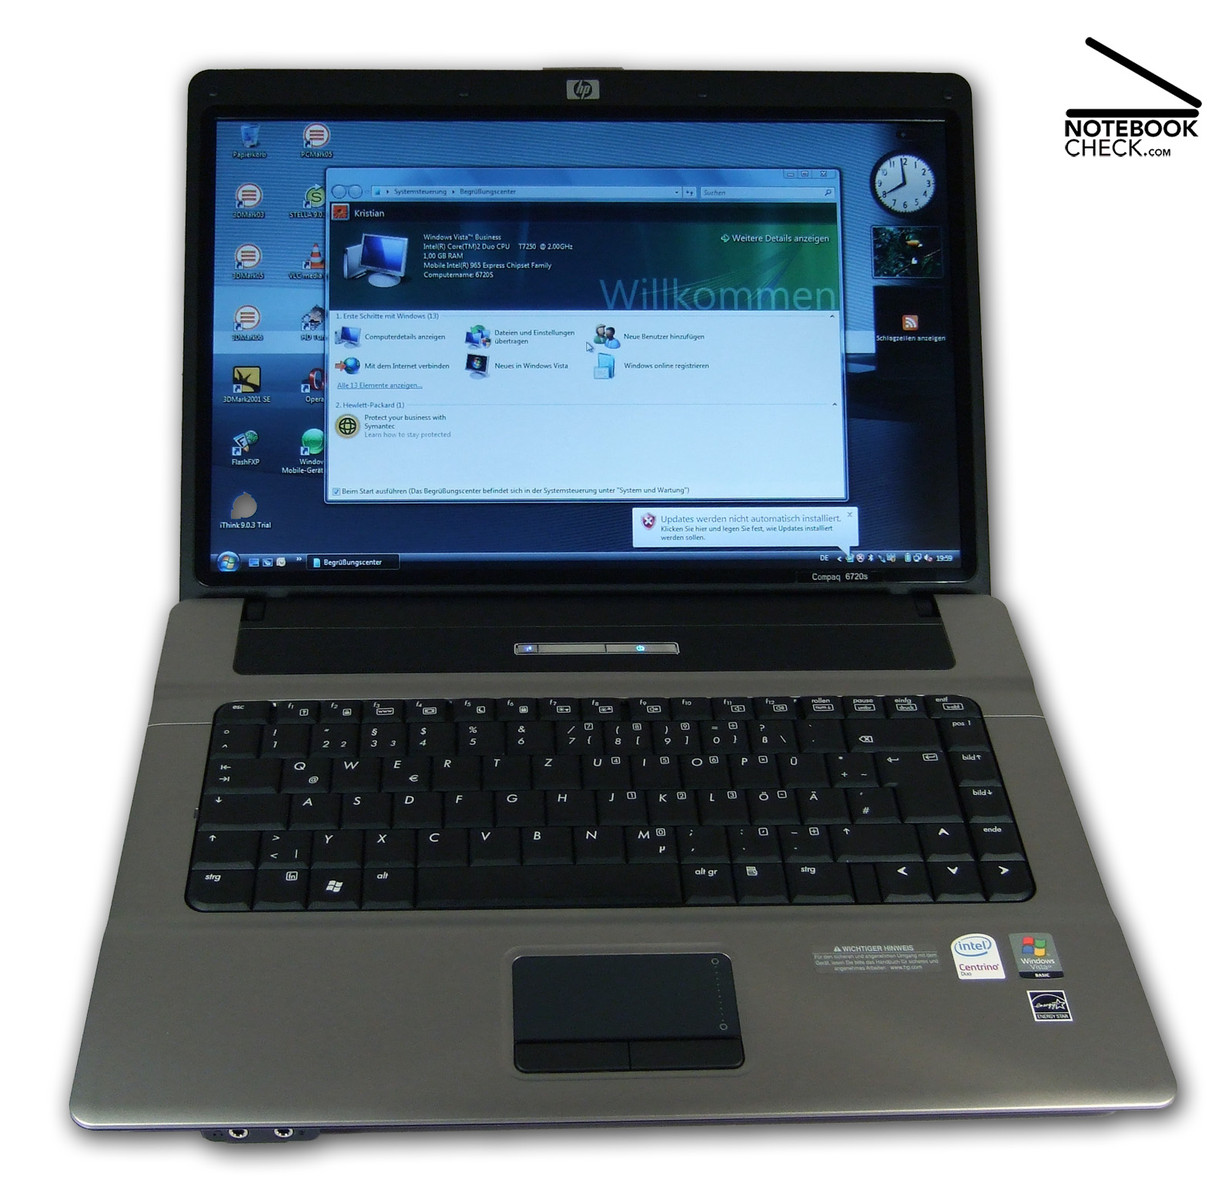 soundmax hp compaq 6720s